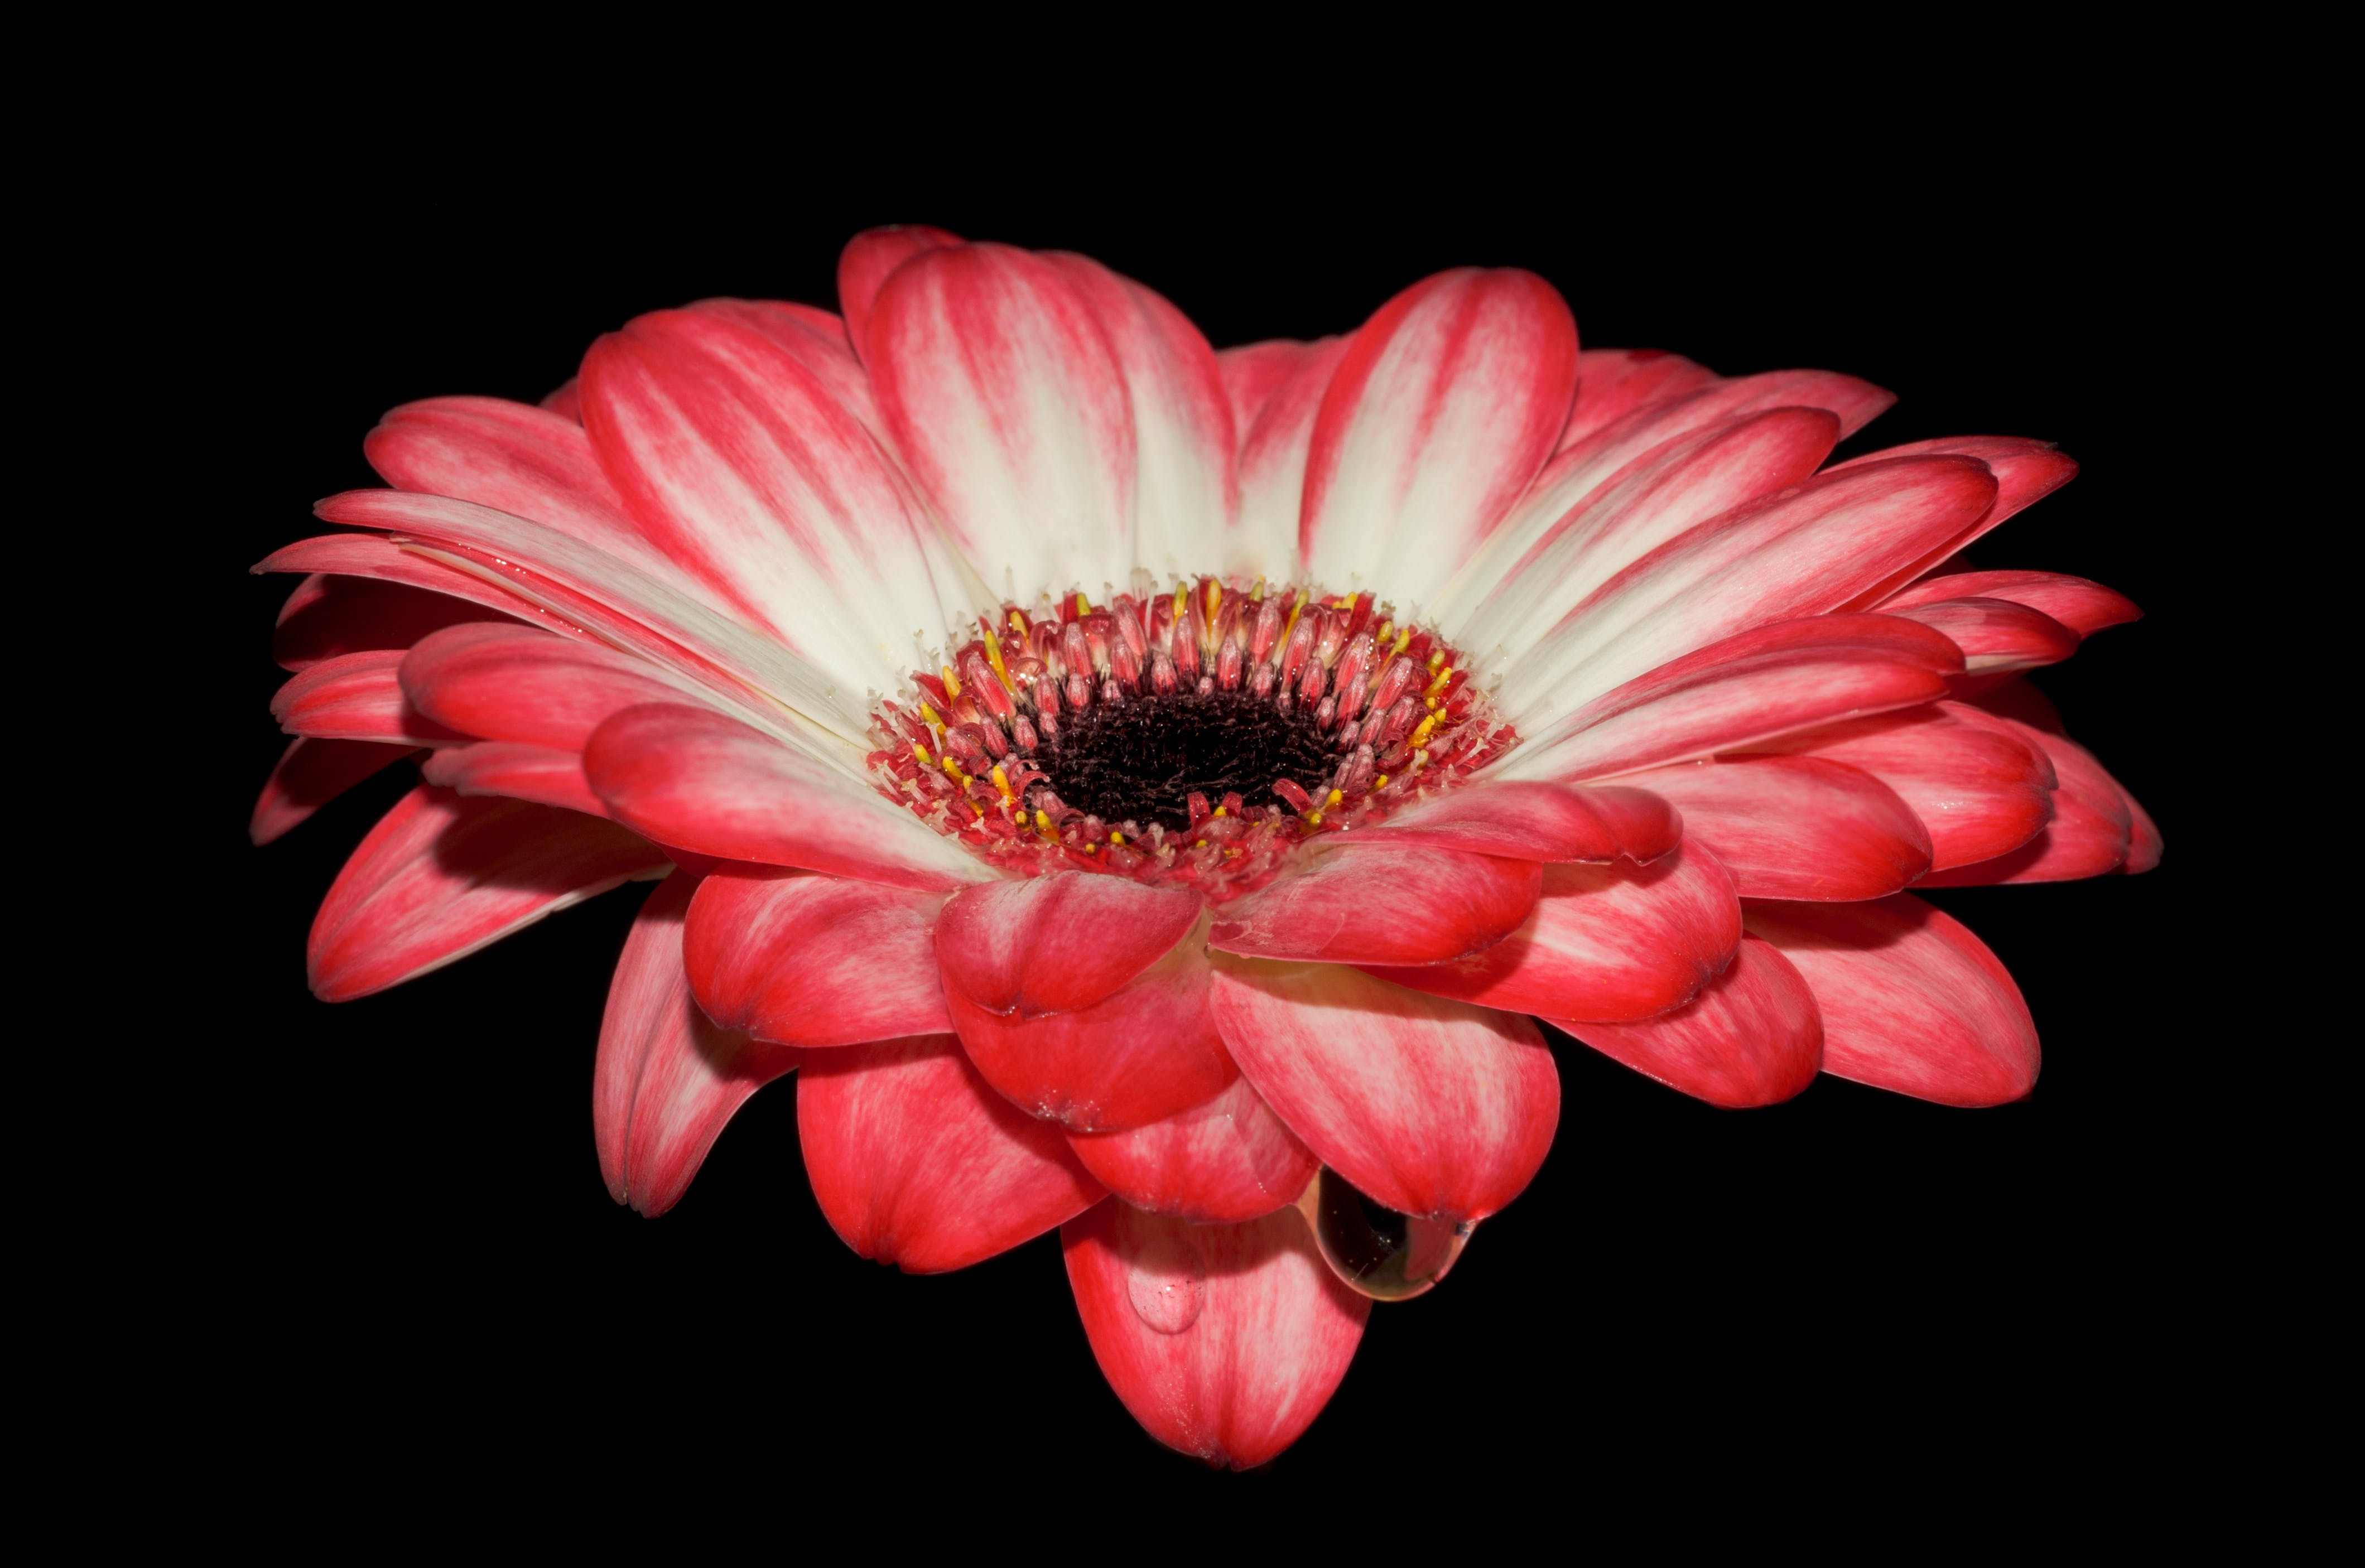 Red and White Petal Flower